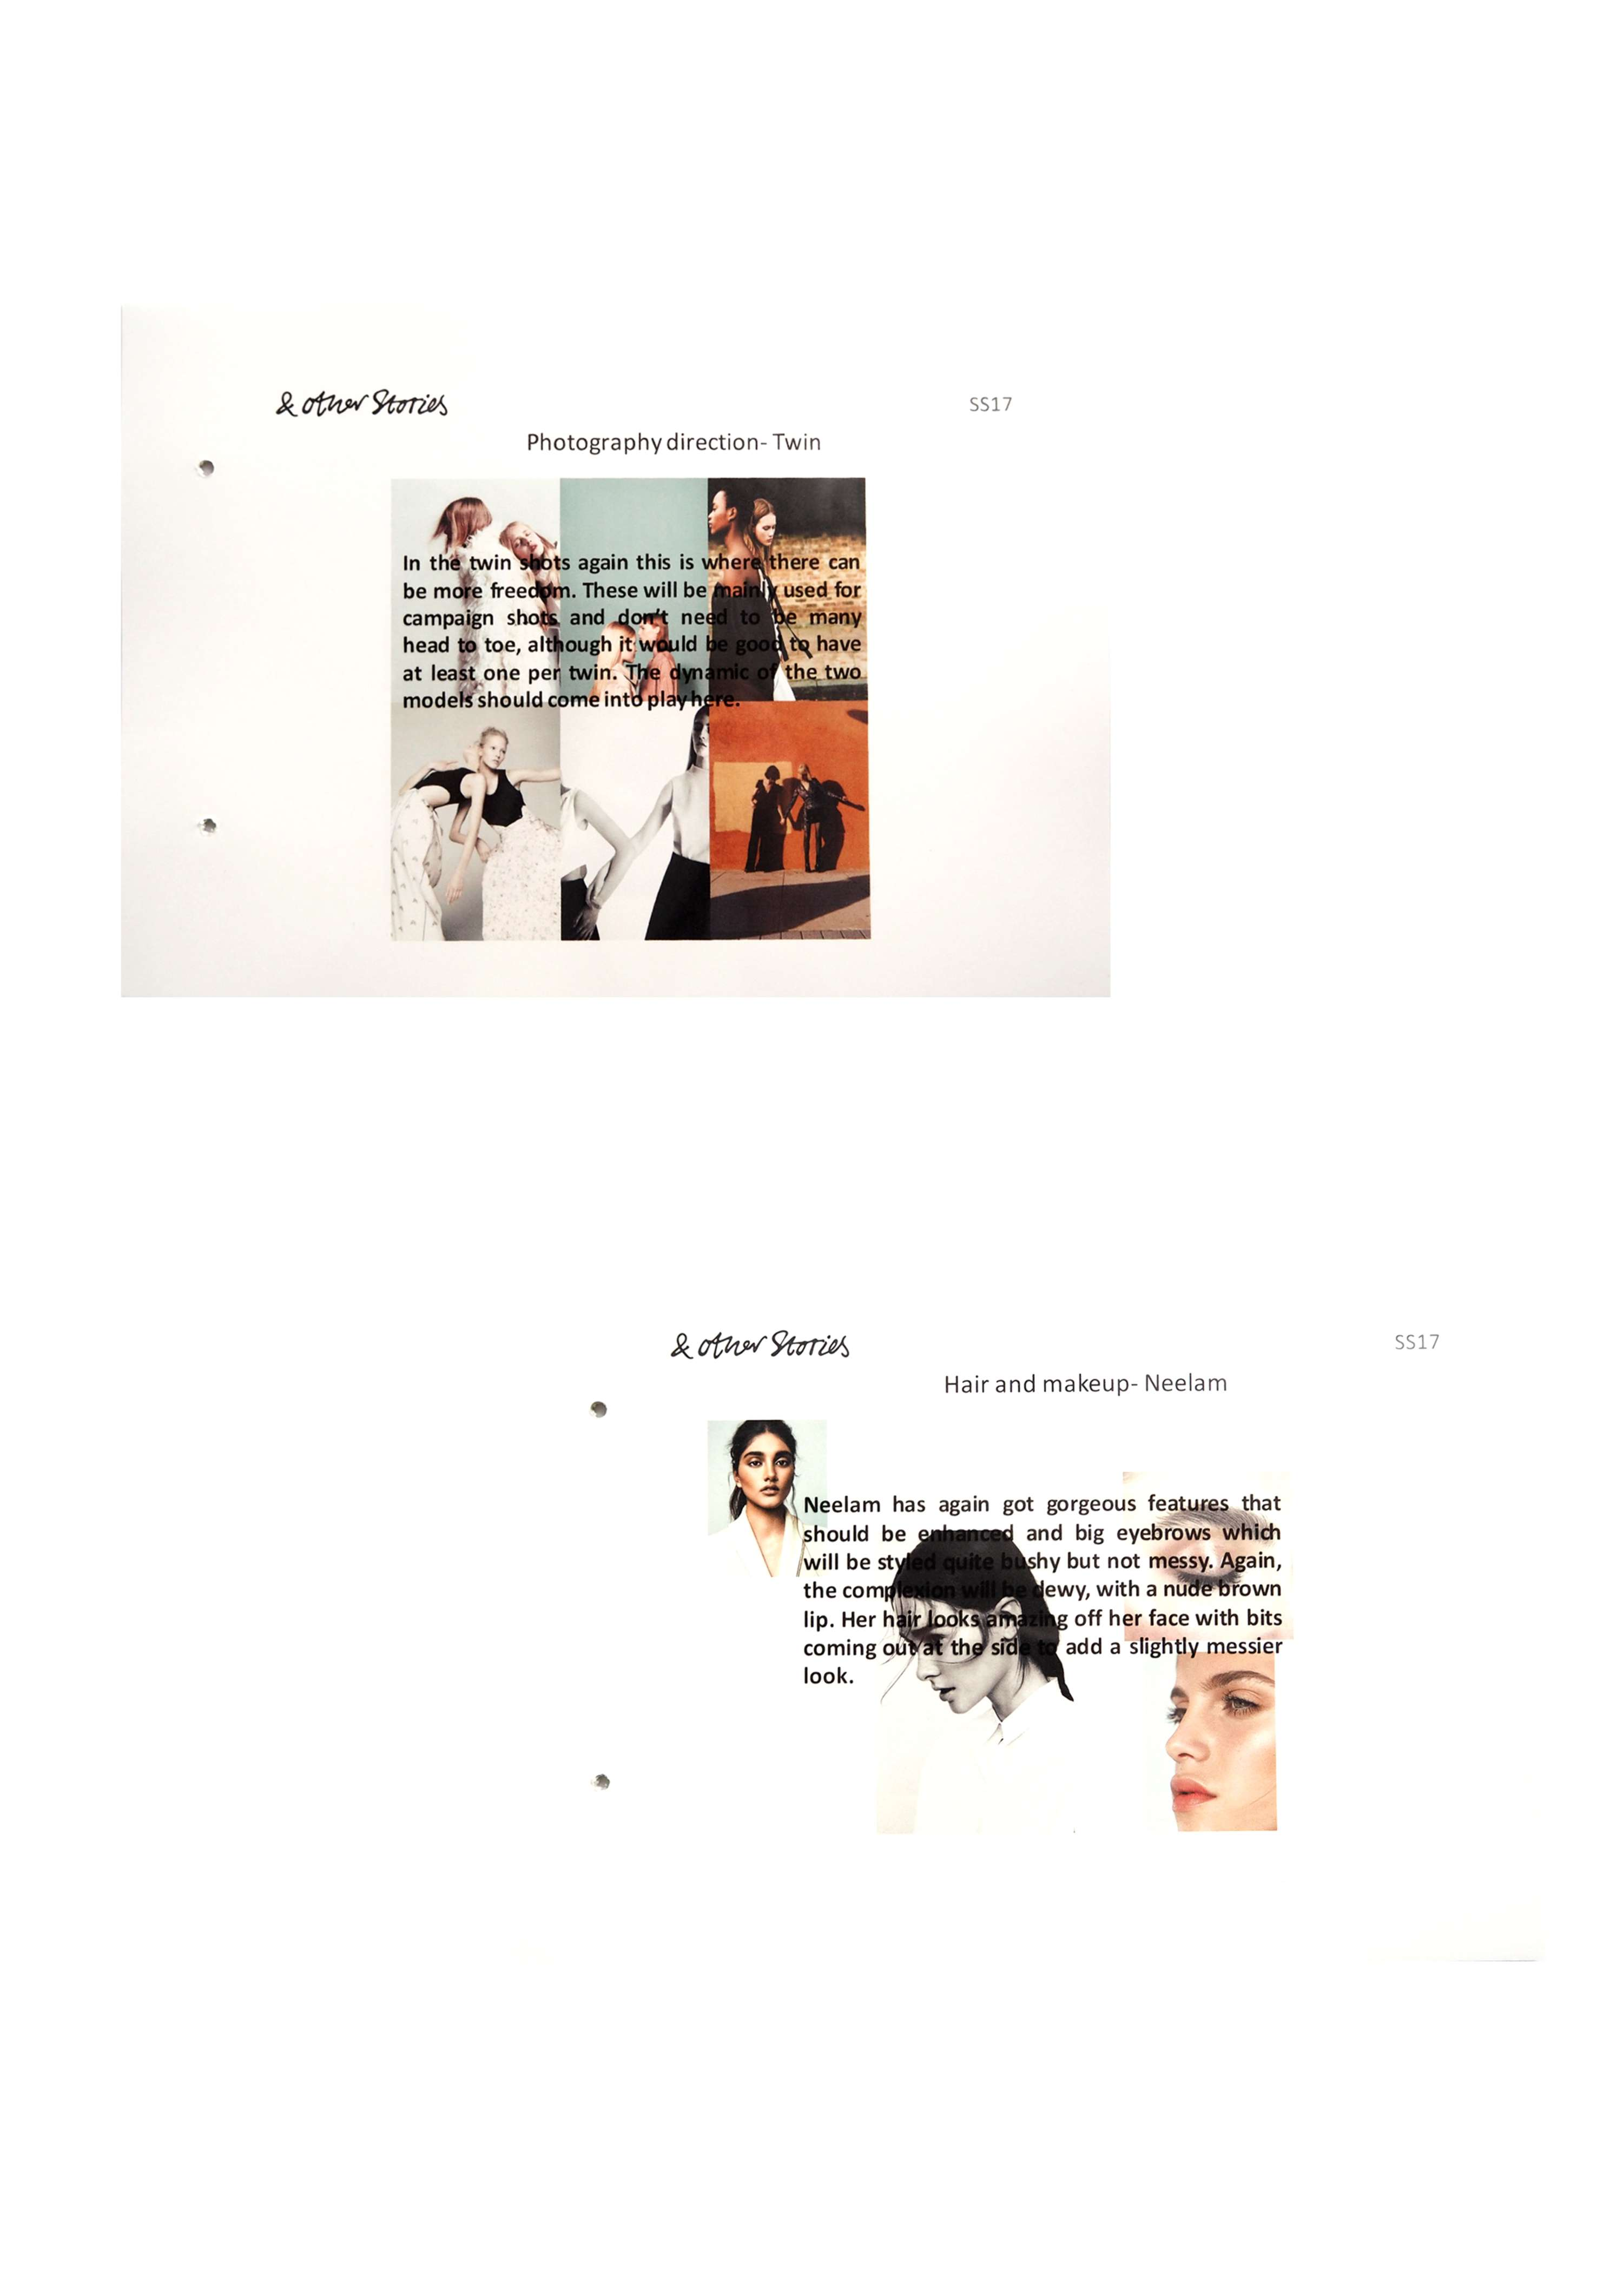 d390fc79357   Other Stories brand look book